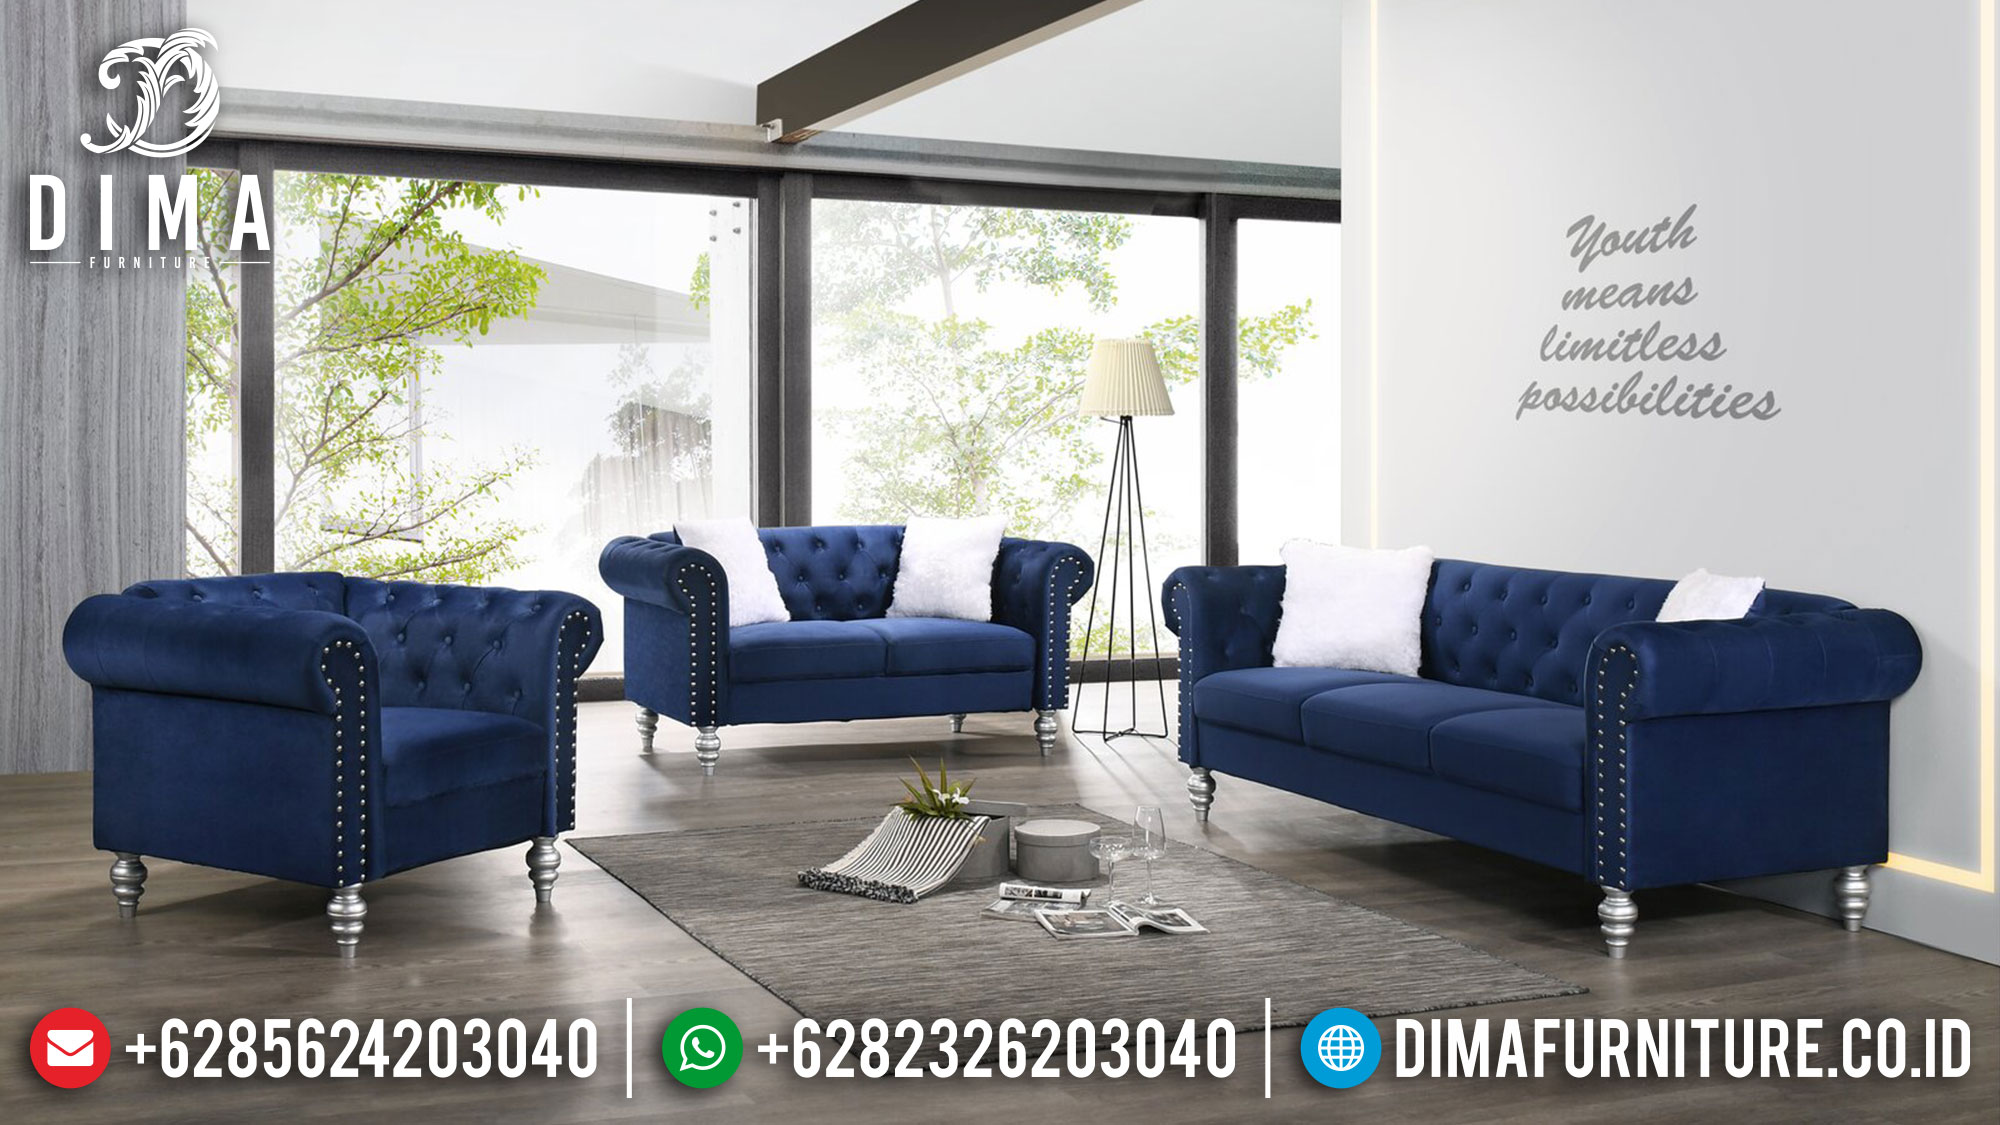 Sofa Tamu Minimalis Chesterfield Best Seller New Set 2021 Ttj-1473